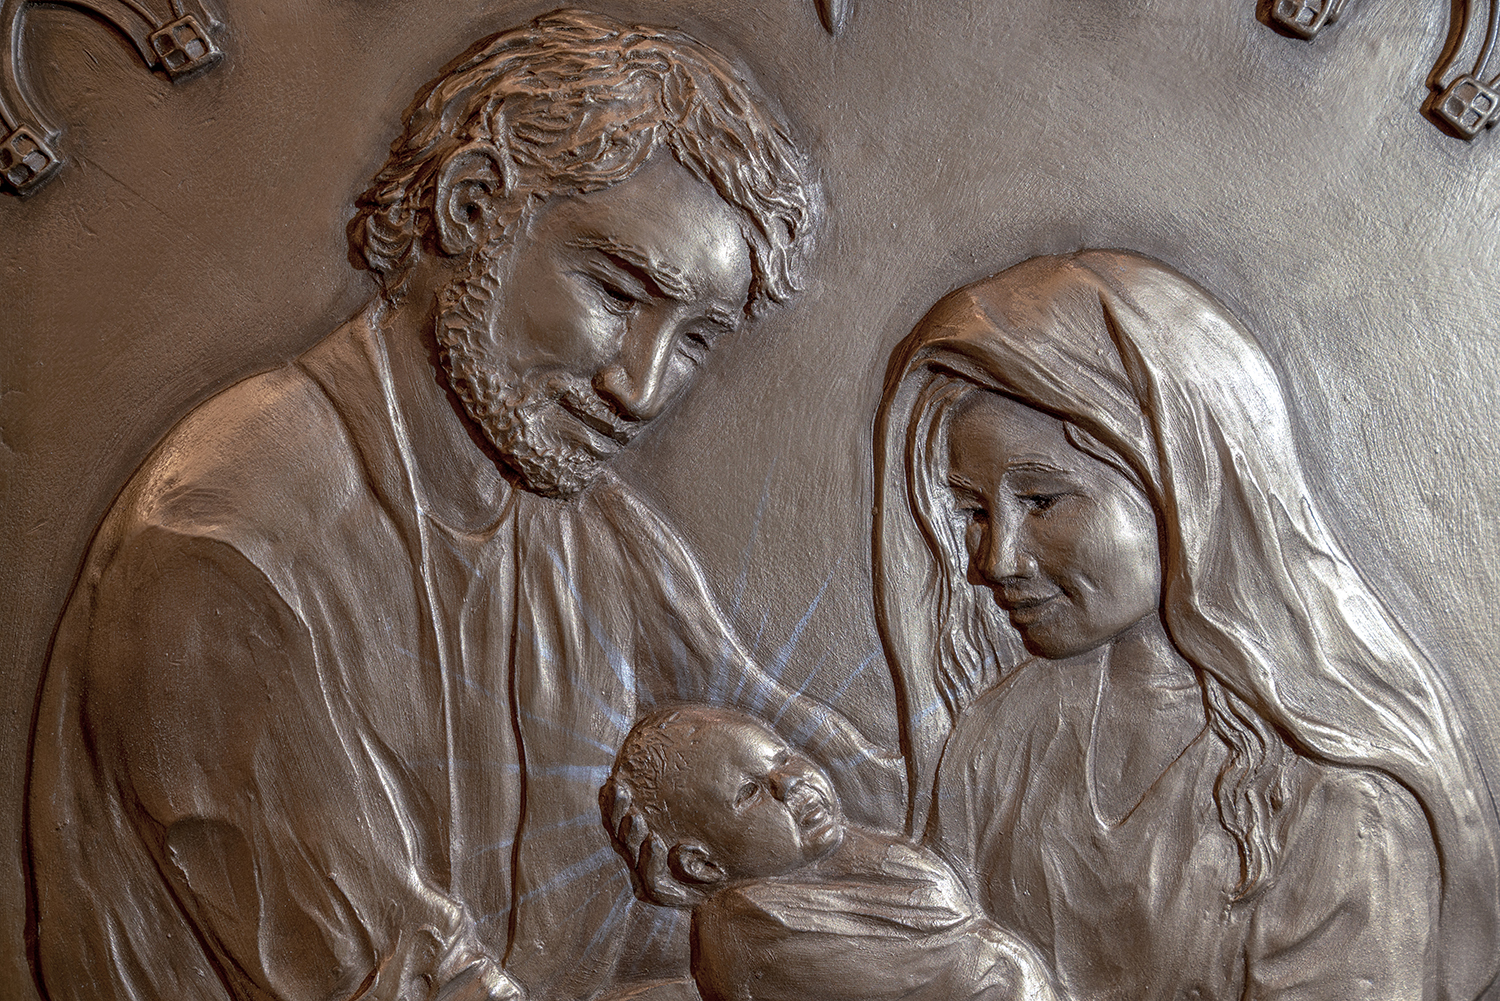 Figure 2: Joseph, Mary, and Jesus. Detail of Nativity triptych pictured in lead photo, by Christina Orthwein, 2018.